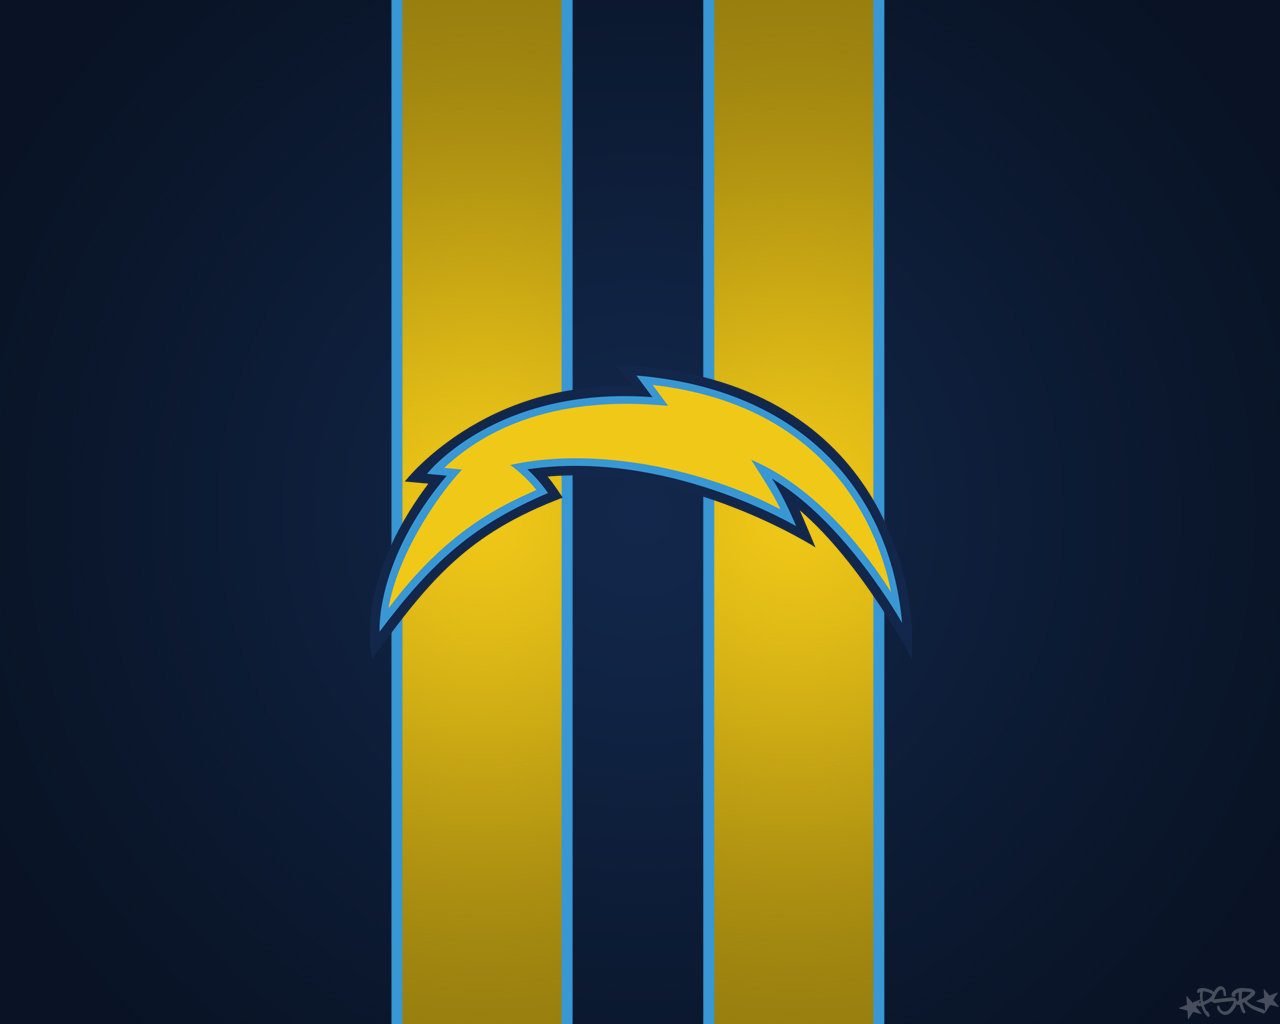 San Diego Chargers Wallpapers Hd For Desktop Backgrounds